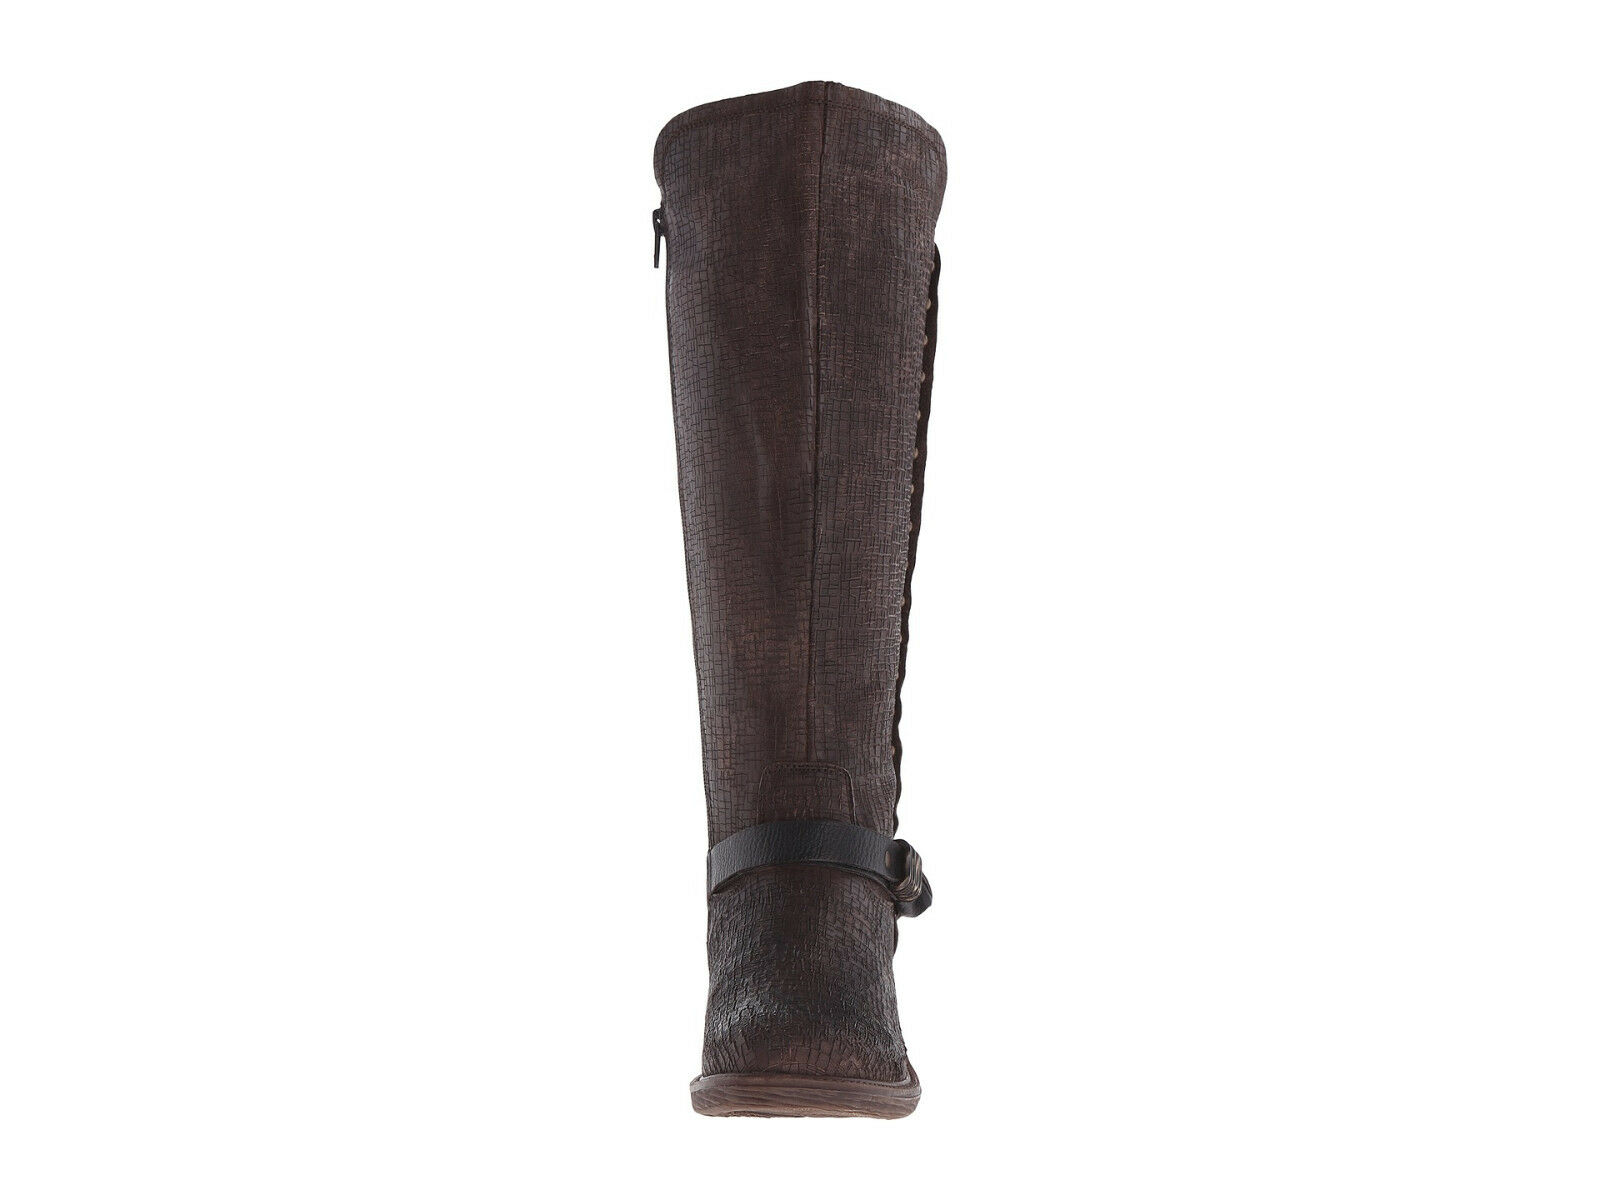 OTBT CACHE RICH BROWN 6.5 LEATHER Stiefel 6 6.5 BROWN 7 7.5 8 ZIP UP KNEE BUCKLE STUDS bd1234